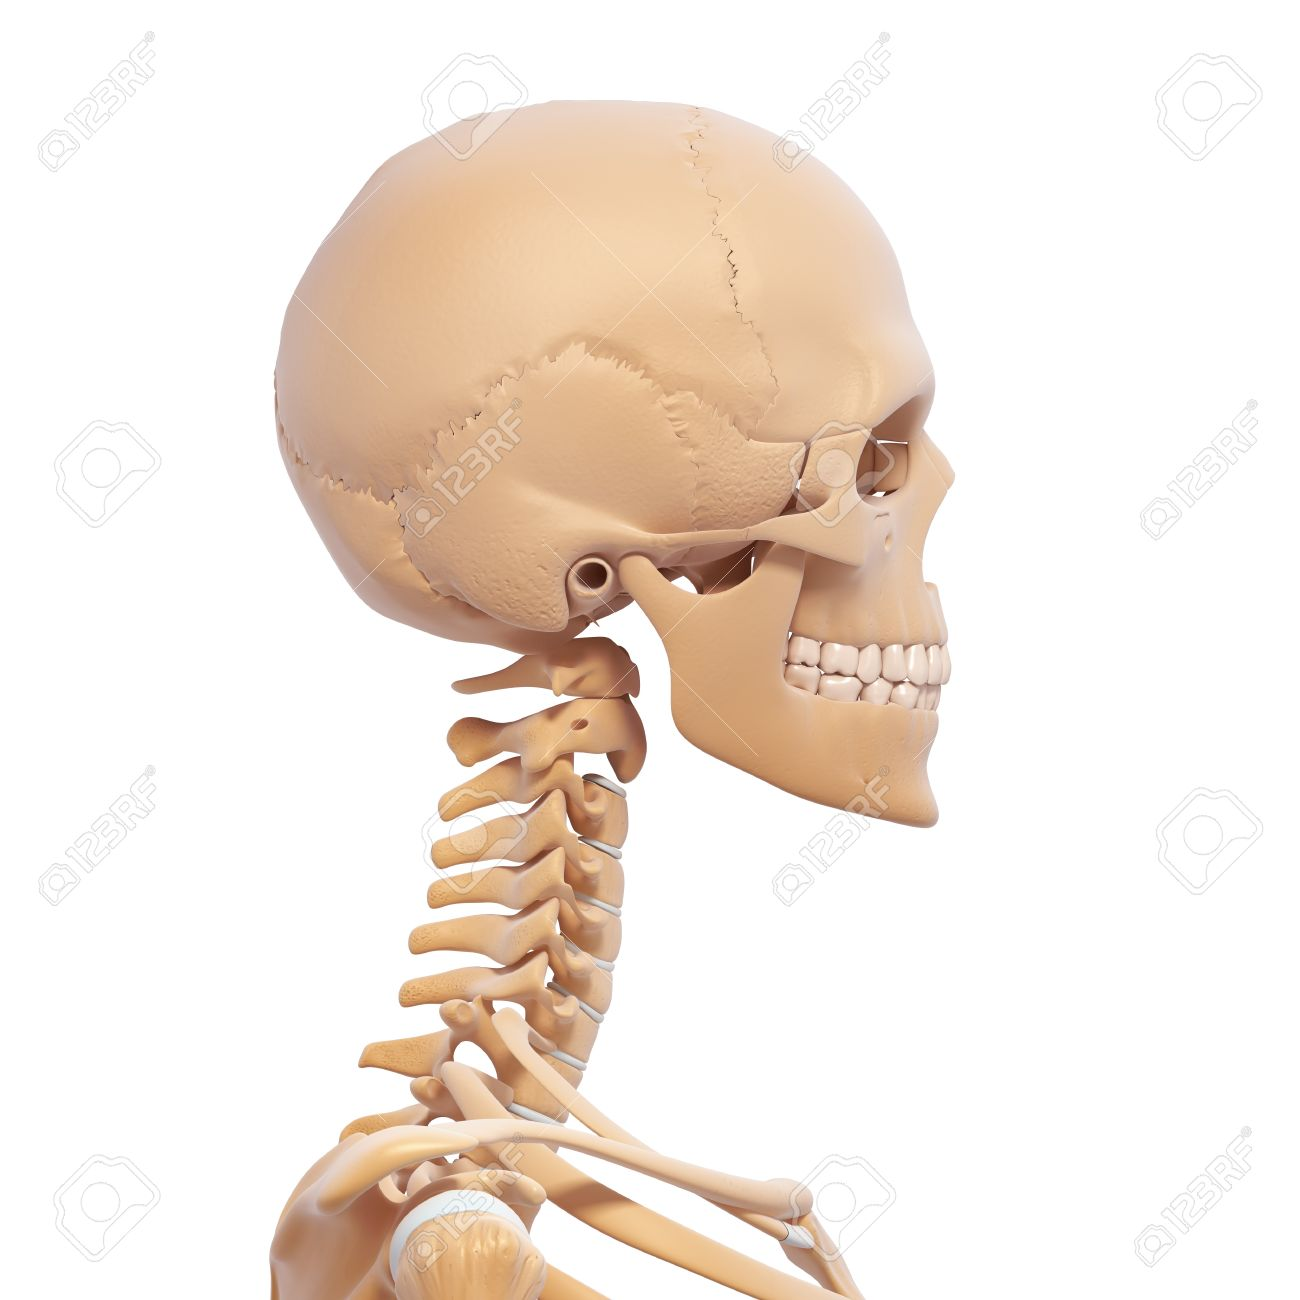 Human Skeleton Side View Stock Photo Picture And Royalty Free Image